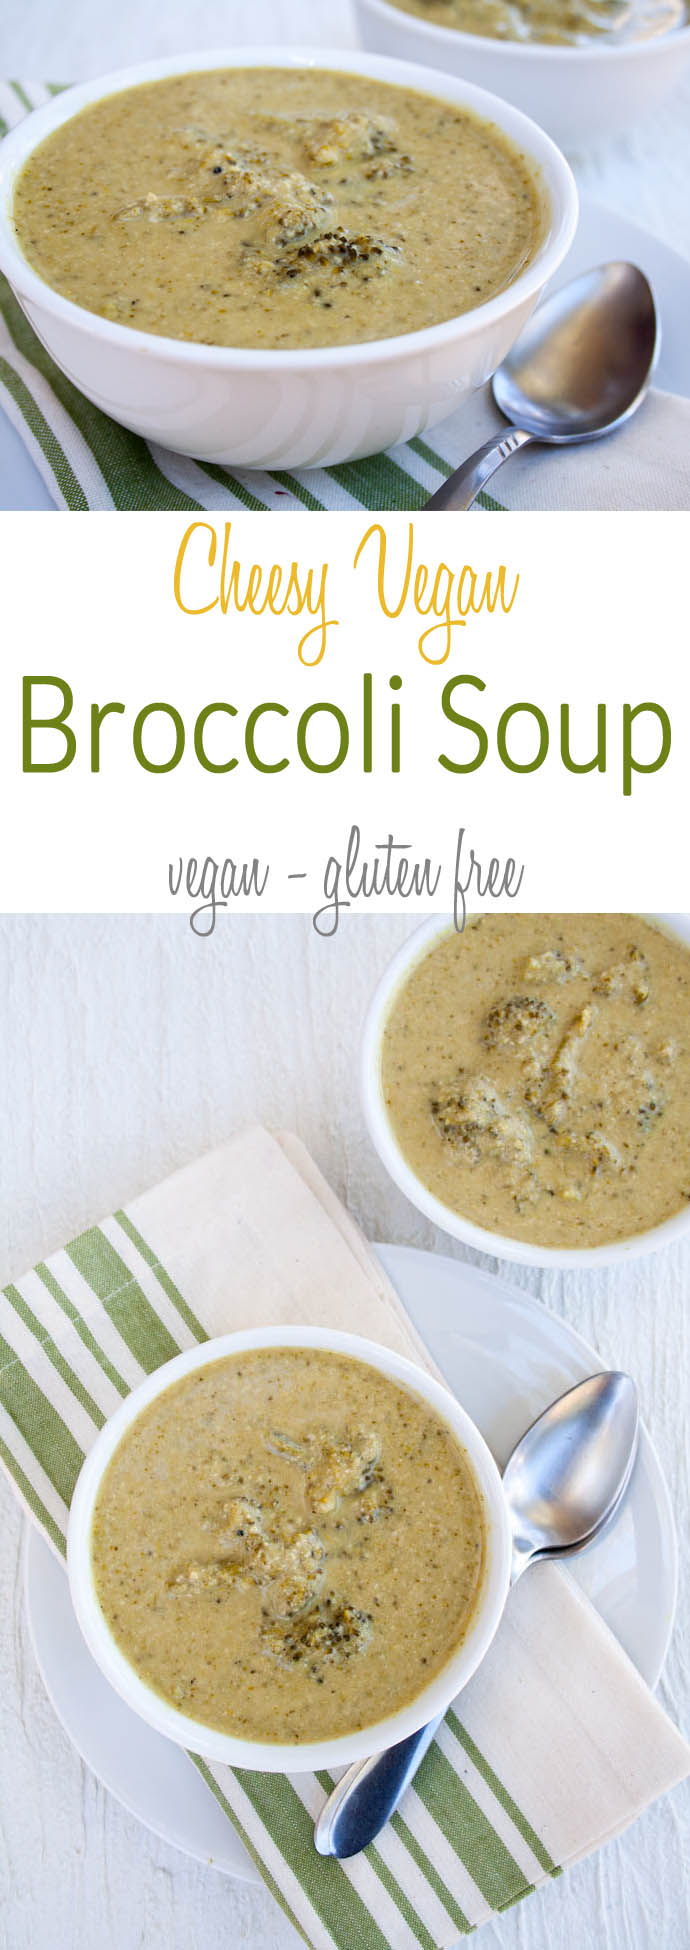 Cheesy Vegan Broccoli Soup (gluten free) - This easy comforting soup is a perfect weeknight meal. Raw cashews add a creamy texture and nutty taste. Nutritional yeast adds a cheesy flavor, as well as B vitamins.